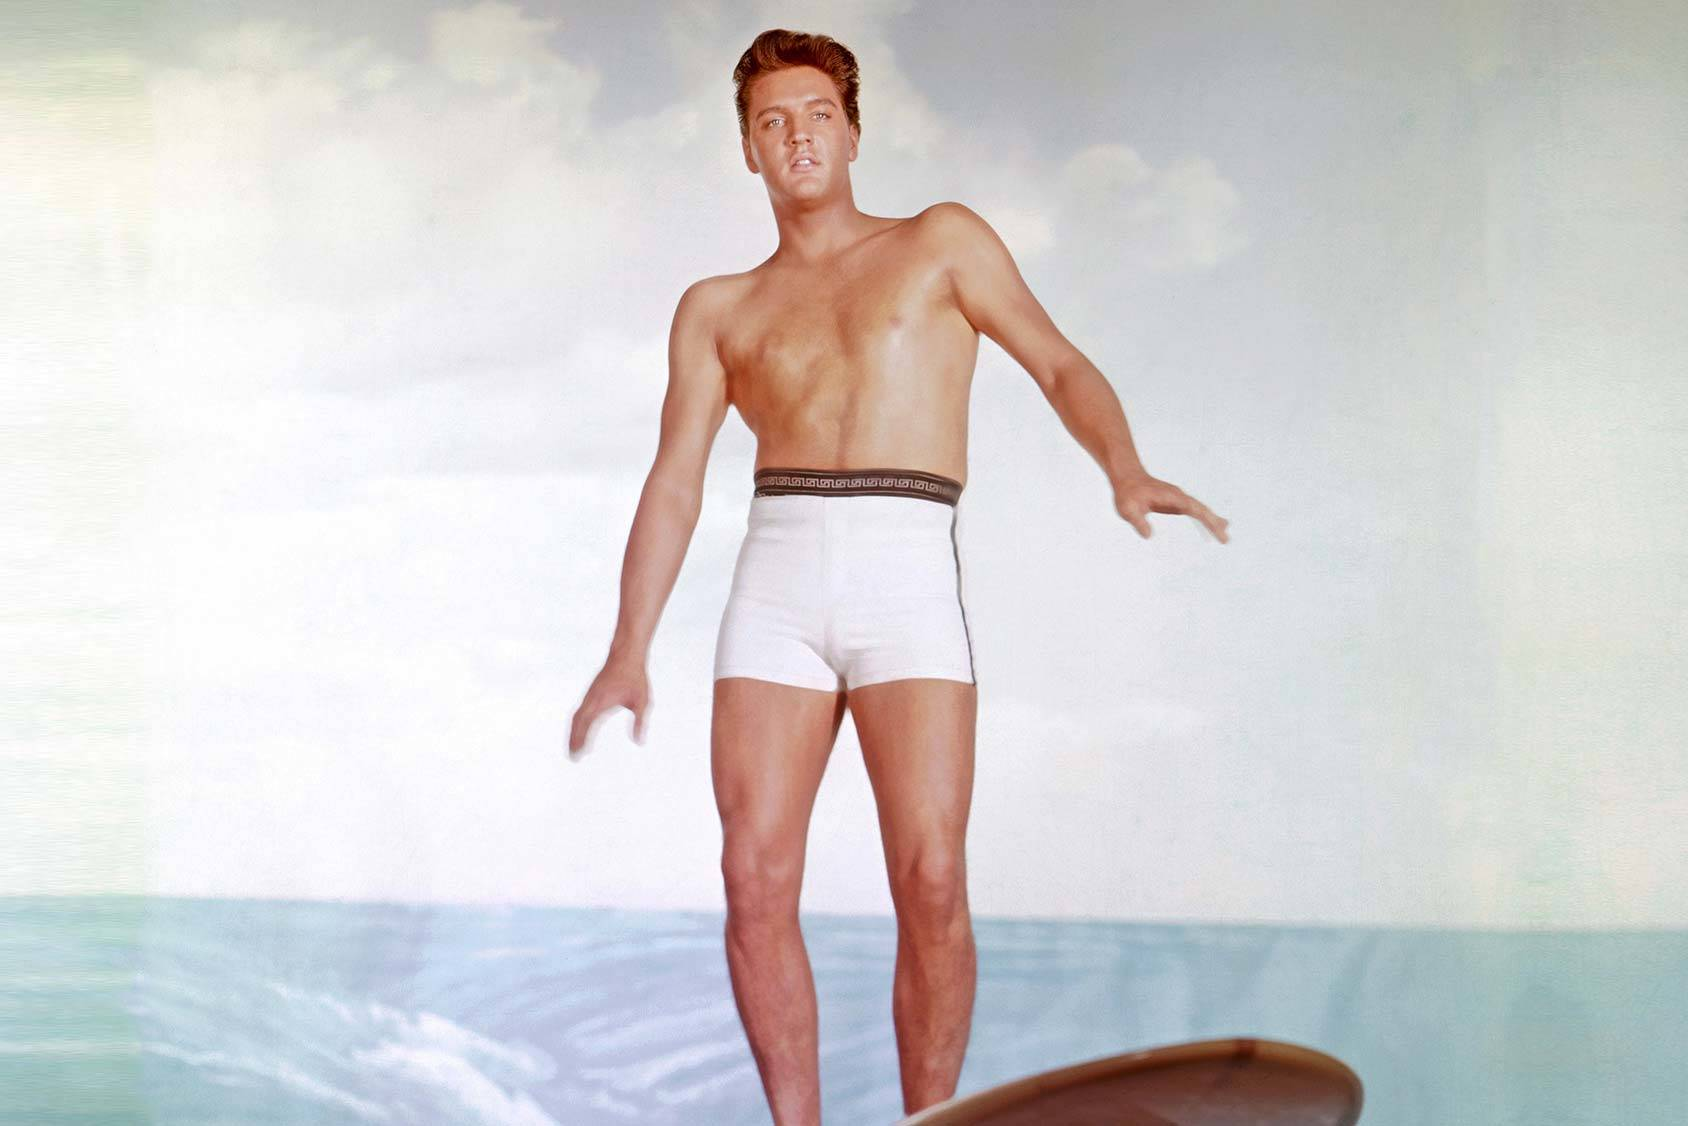 Elvis Presley showing off his surf skills in the movie Blue Hawaii, Getty Images.